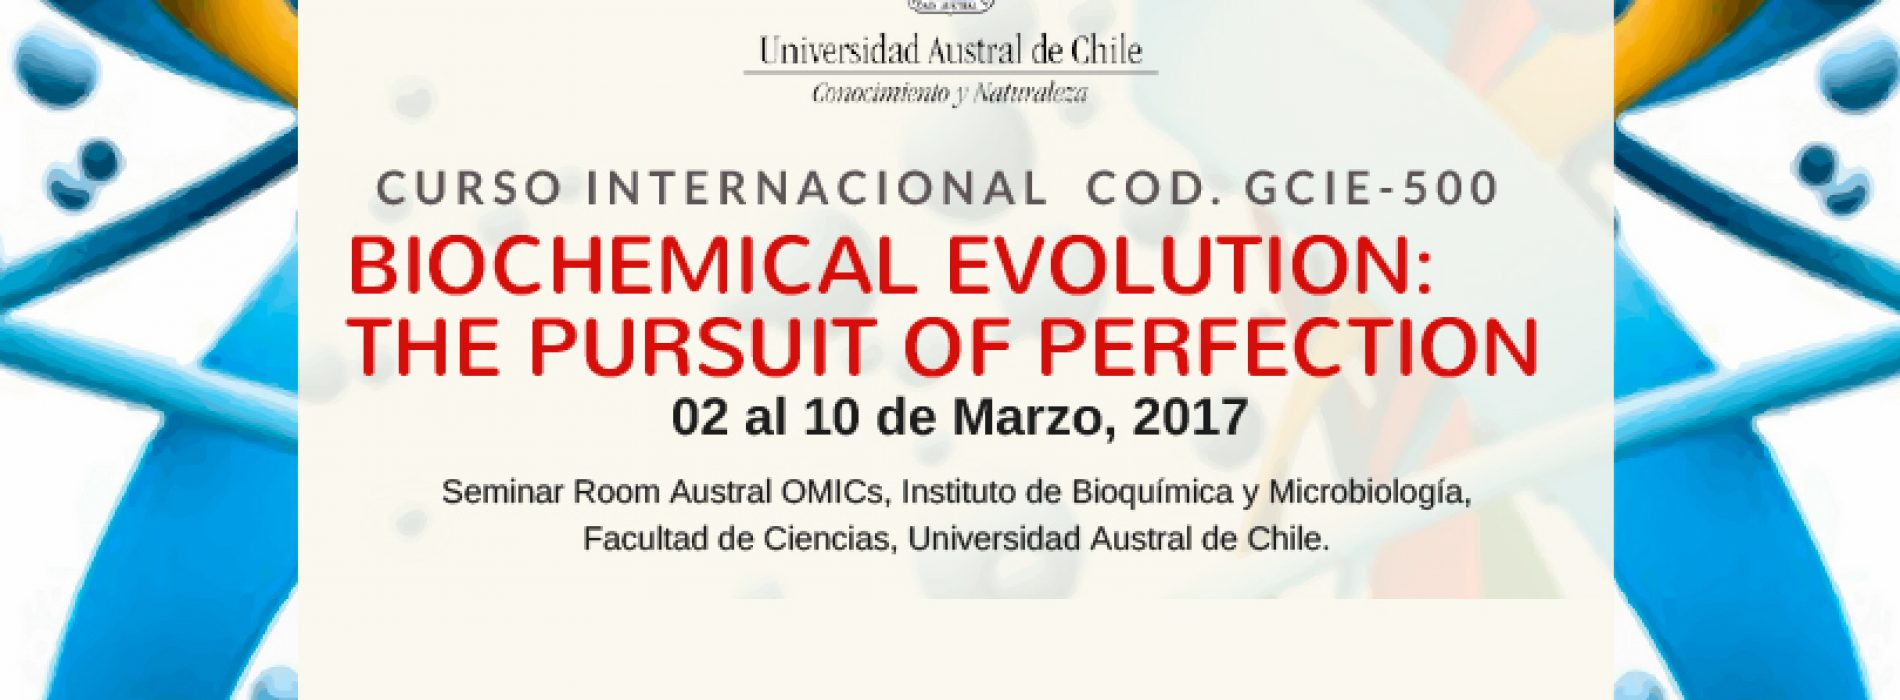 "Curso Internacional COD. GCIE-500. ""Biochemical Evolution: The Pursuit of Perfection"". 02 al 10 de Marzo, 2017"